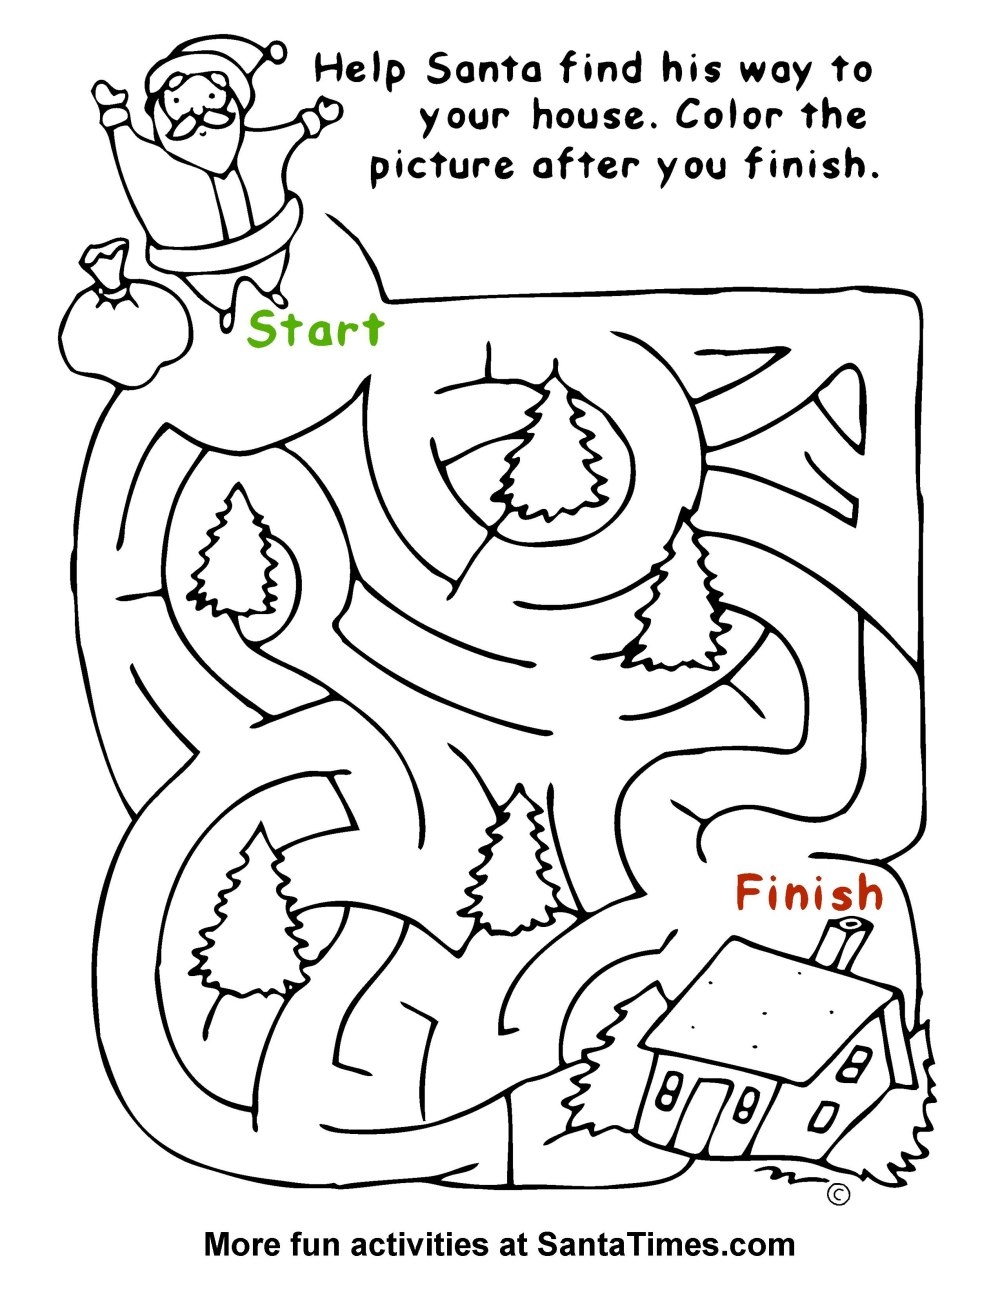 Easy Santa Maze for the little ones! Christmas Coloring Page Activity